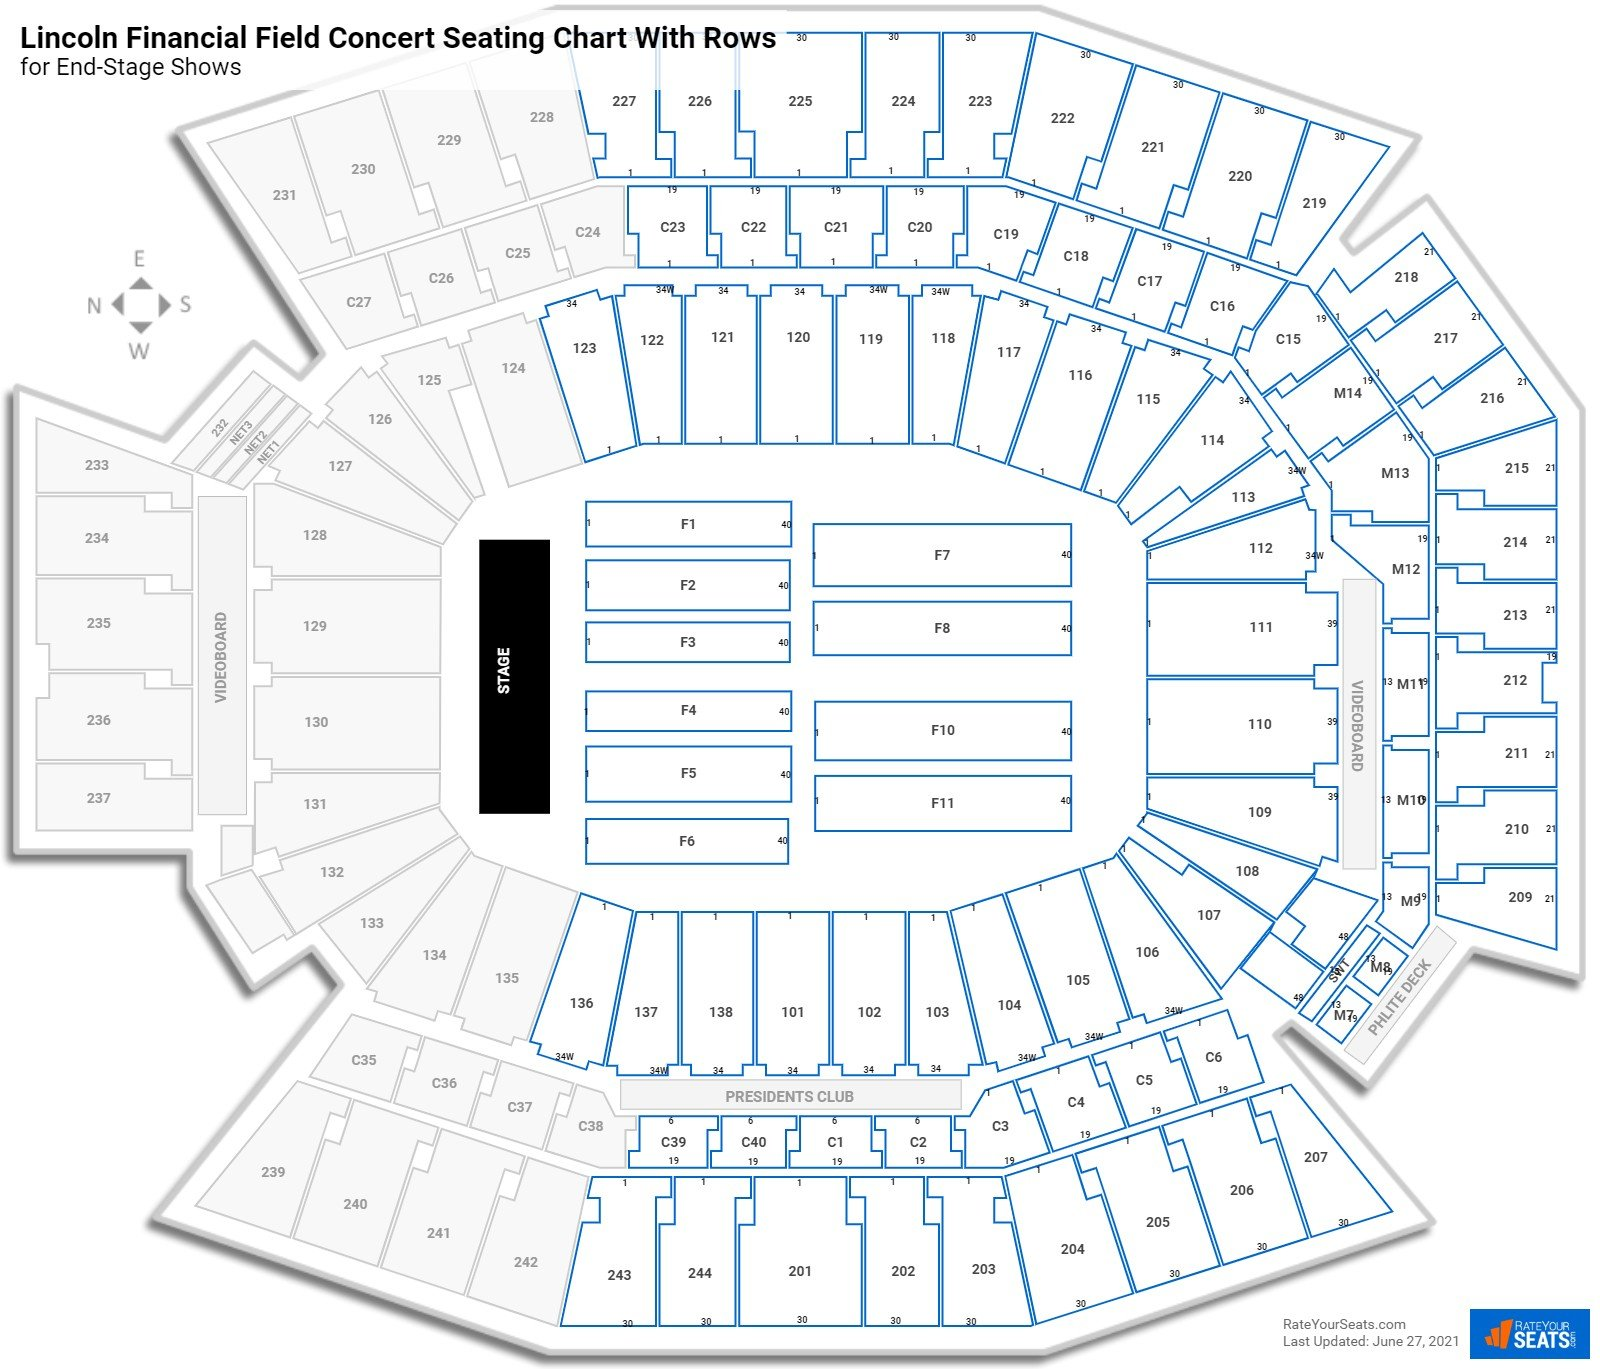 Lincoln Financial Field seating chart with rows concert